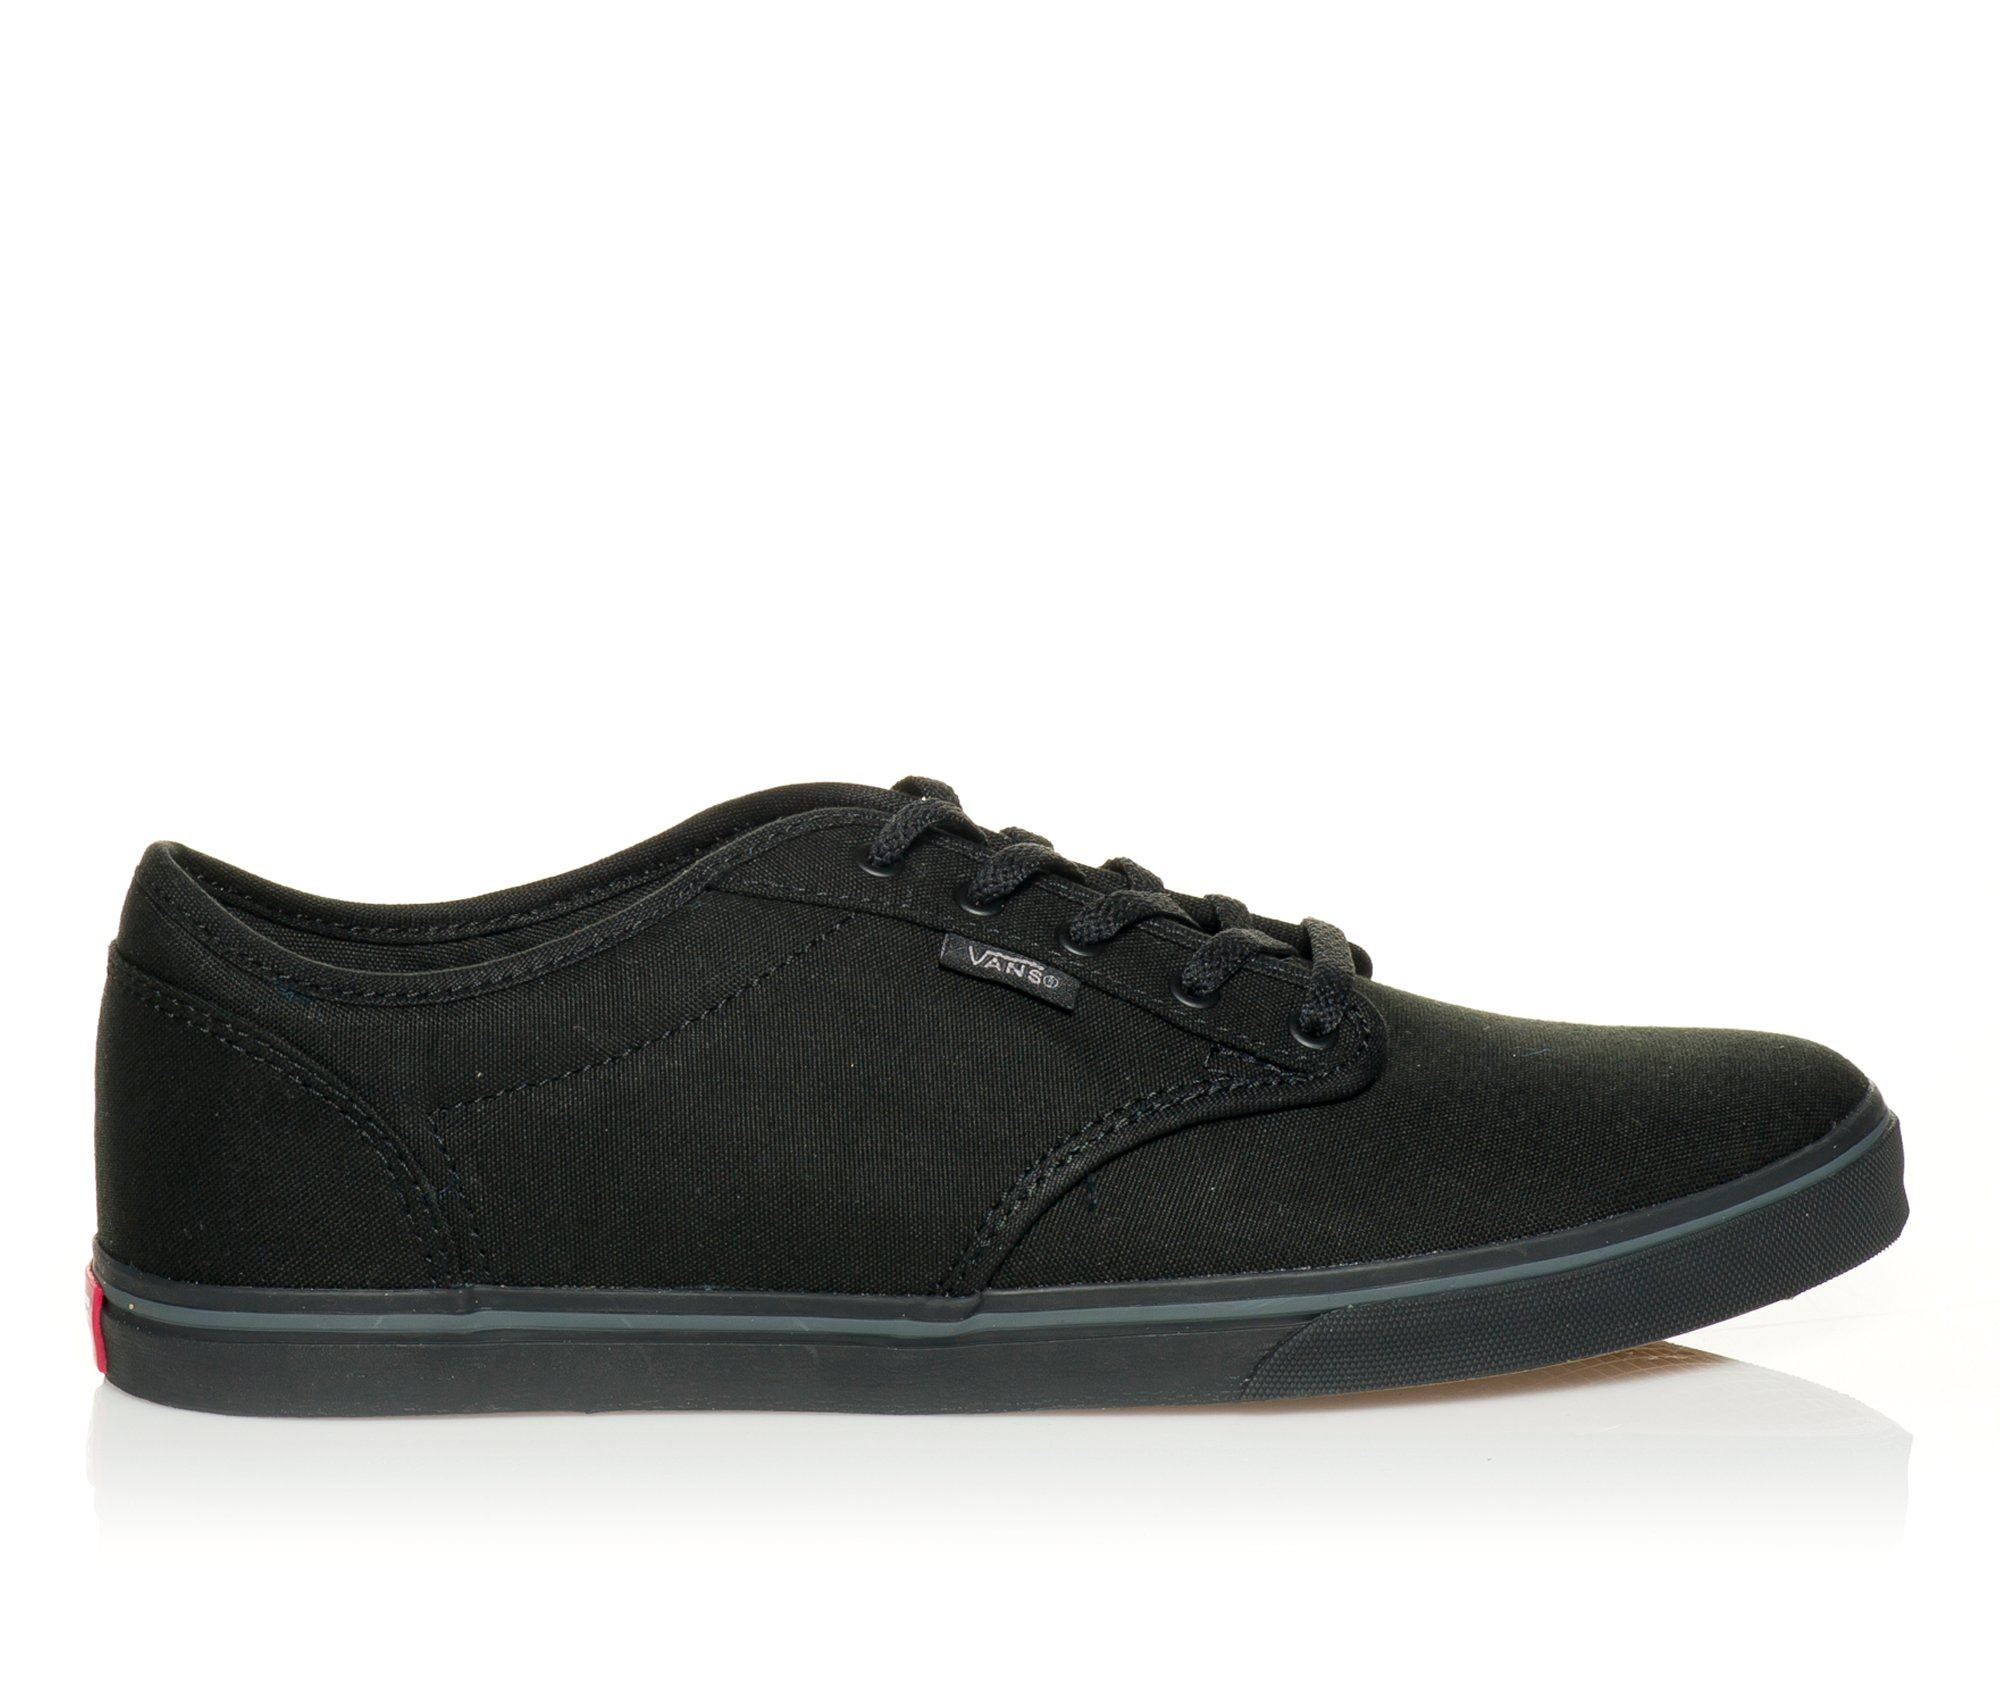 Vans Atwood Low Women's Athletic Shoe (Black)